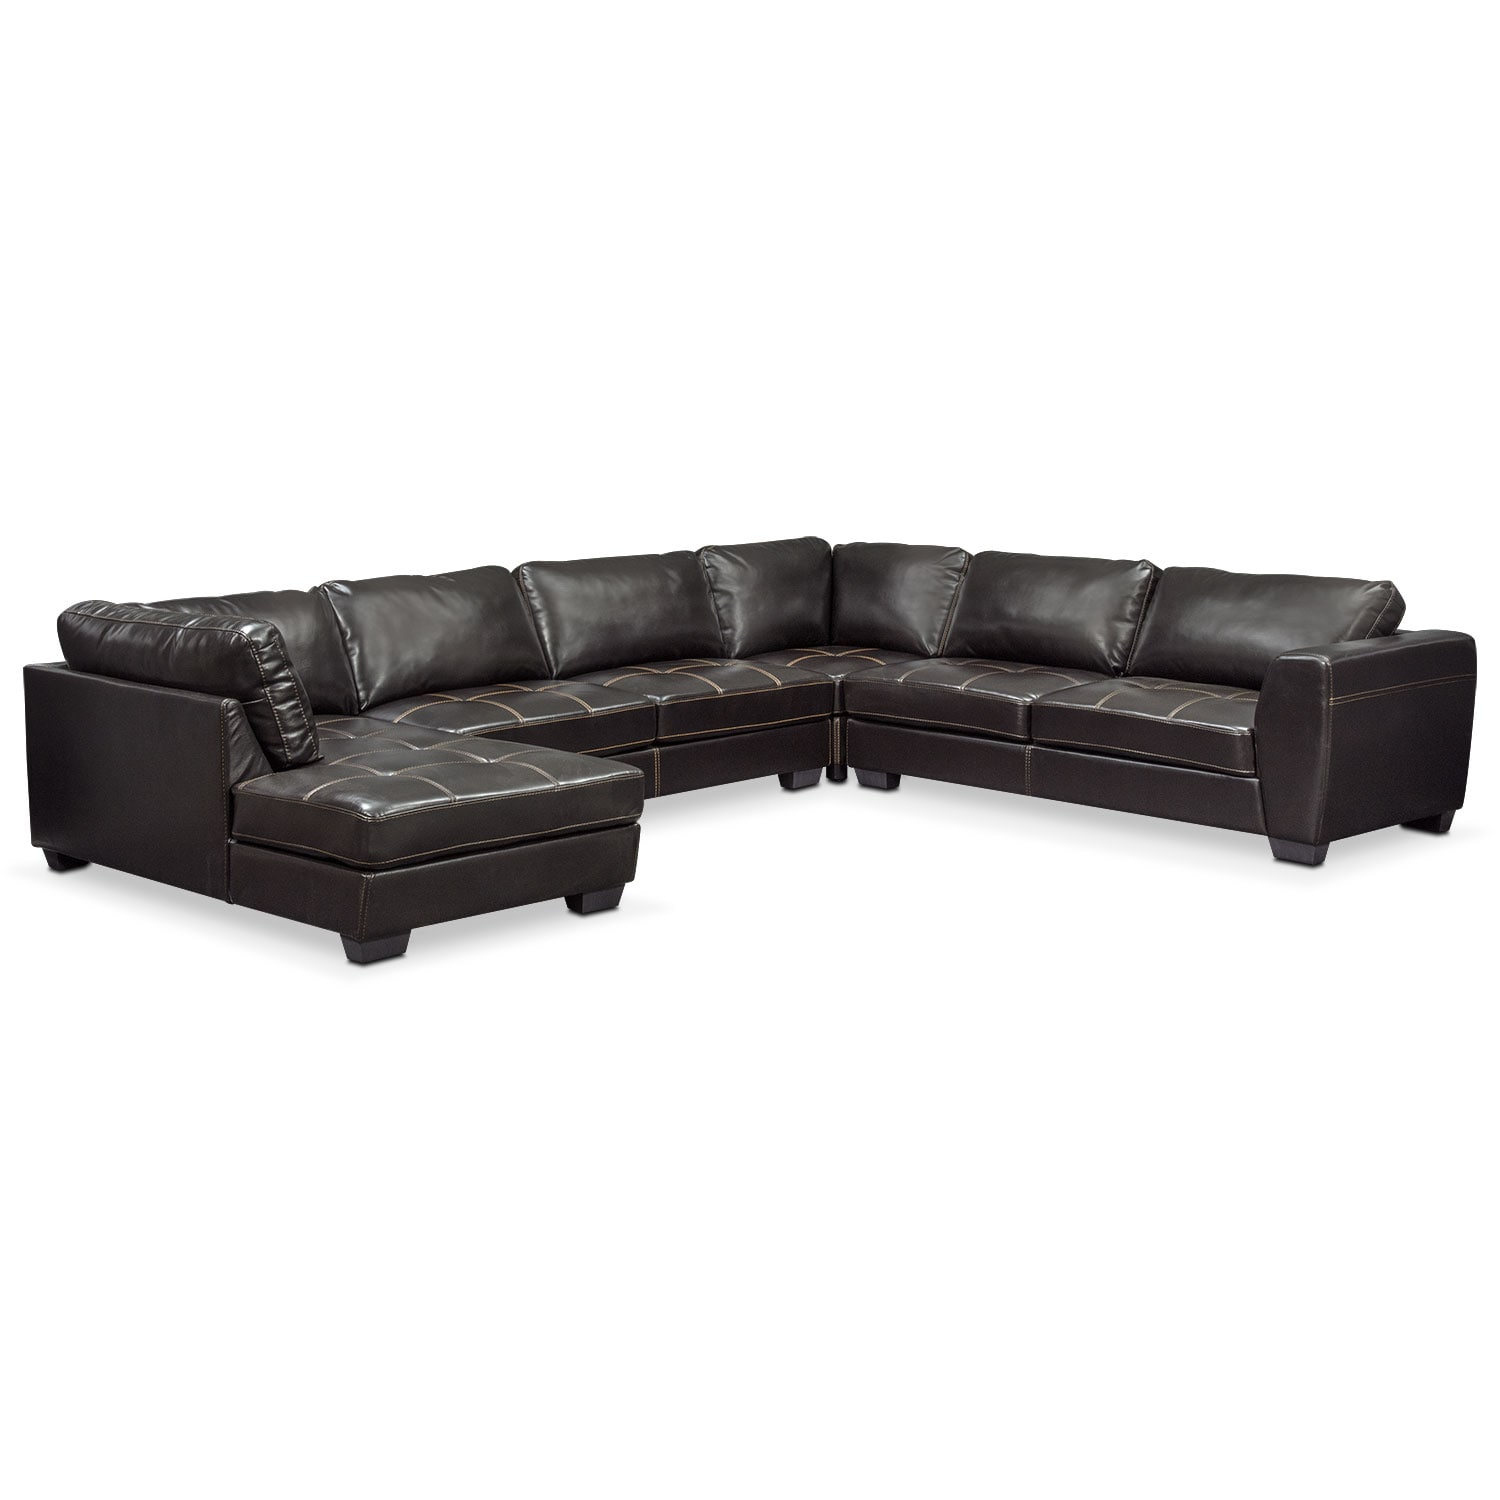 Living Room Furniture - Santana 4-Piece Sectional with Chaise